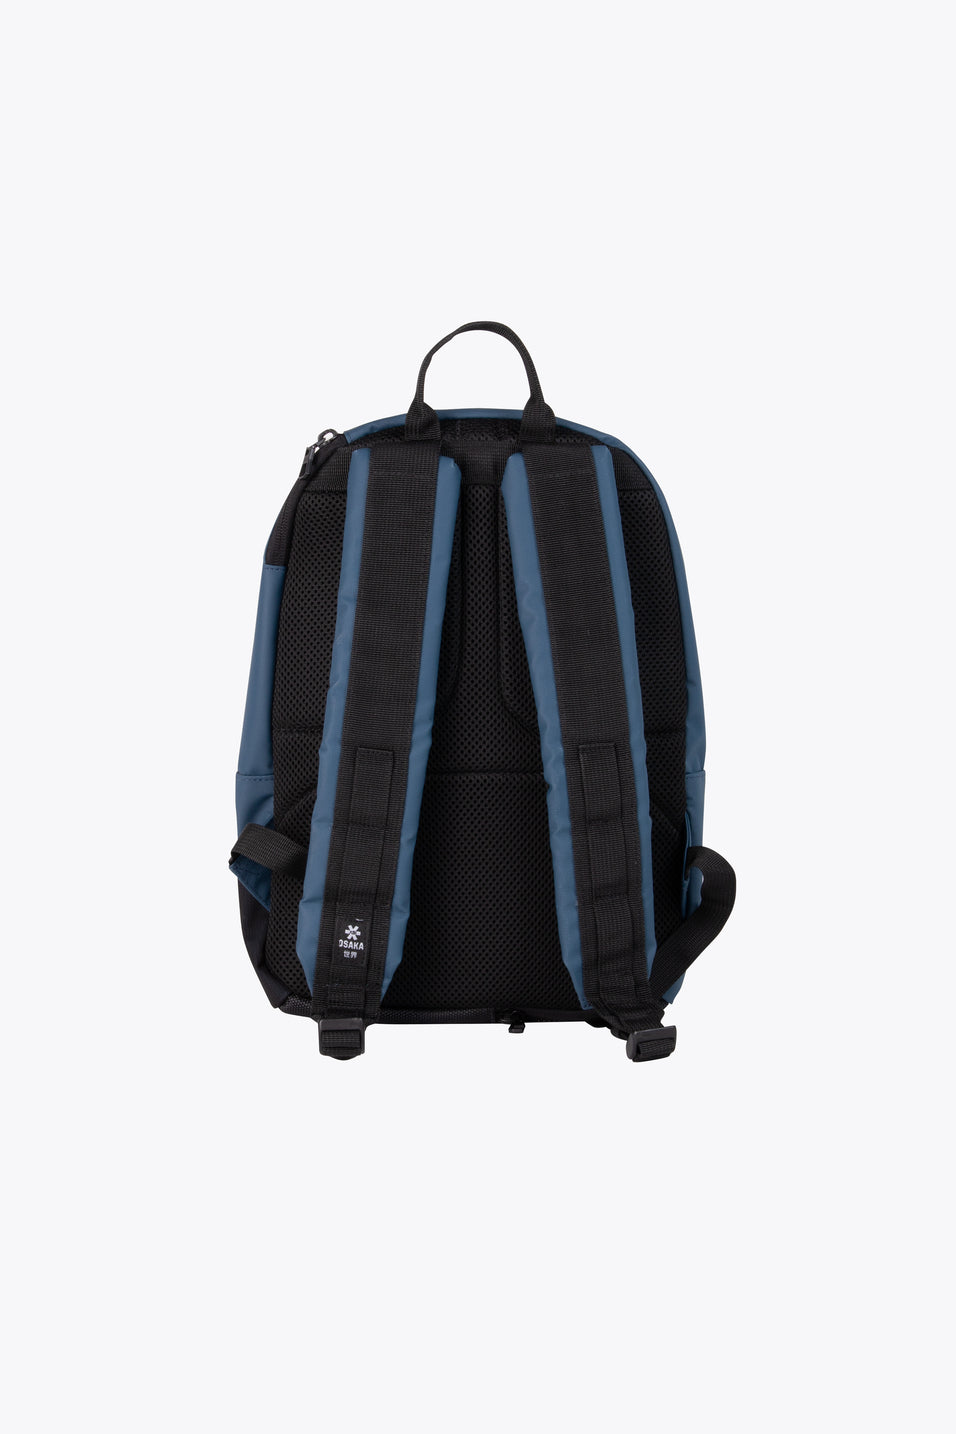 Pro Tour Compact Backpack - Galaxy Navy